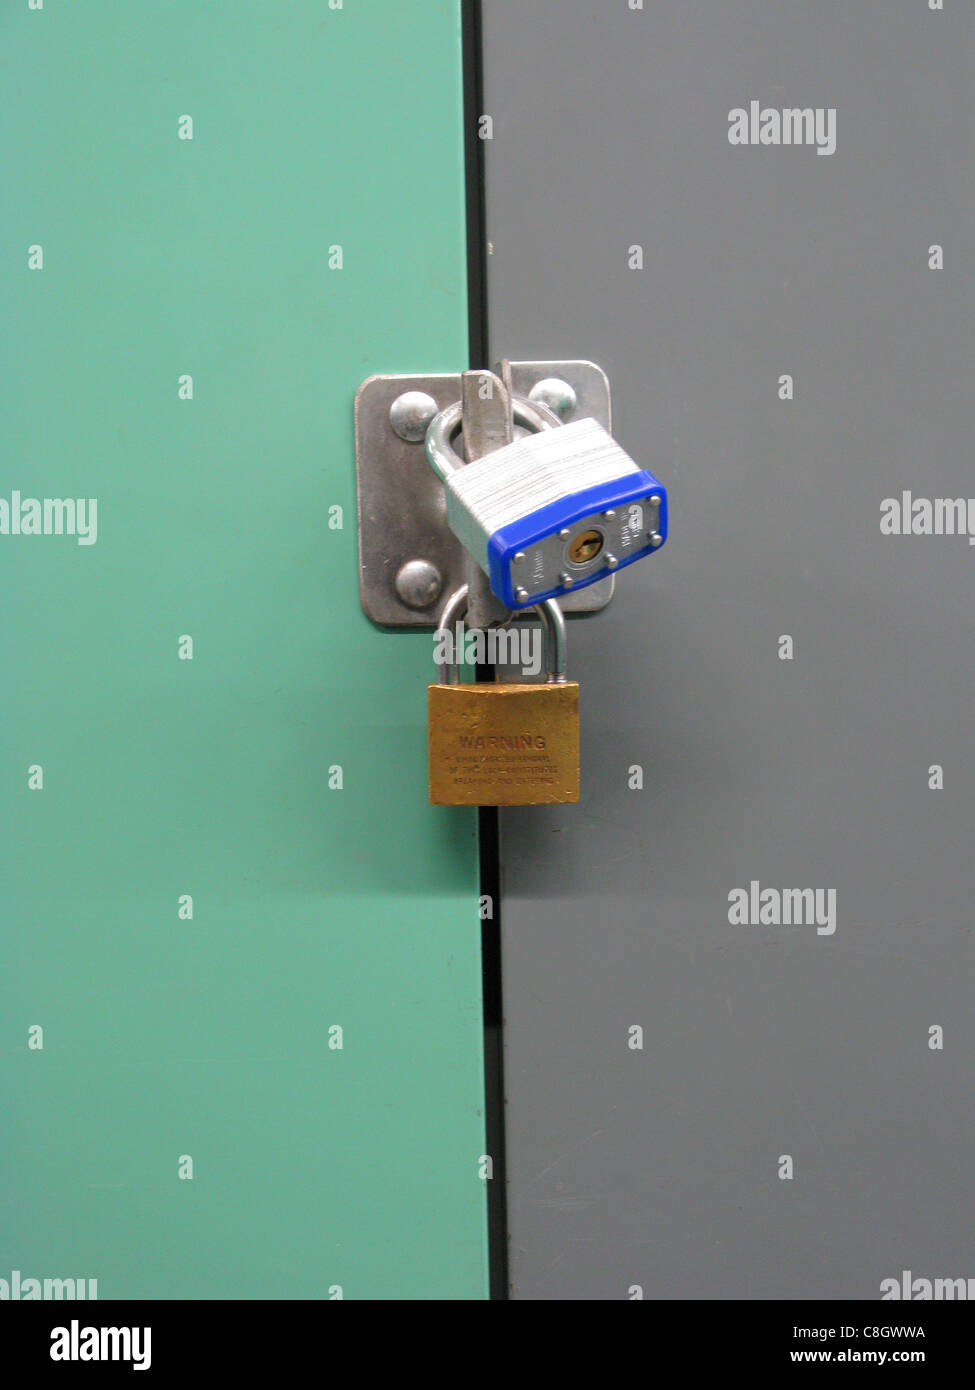 Two padlocks on a metal storage door door - Stock Image